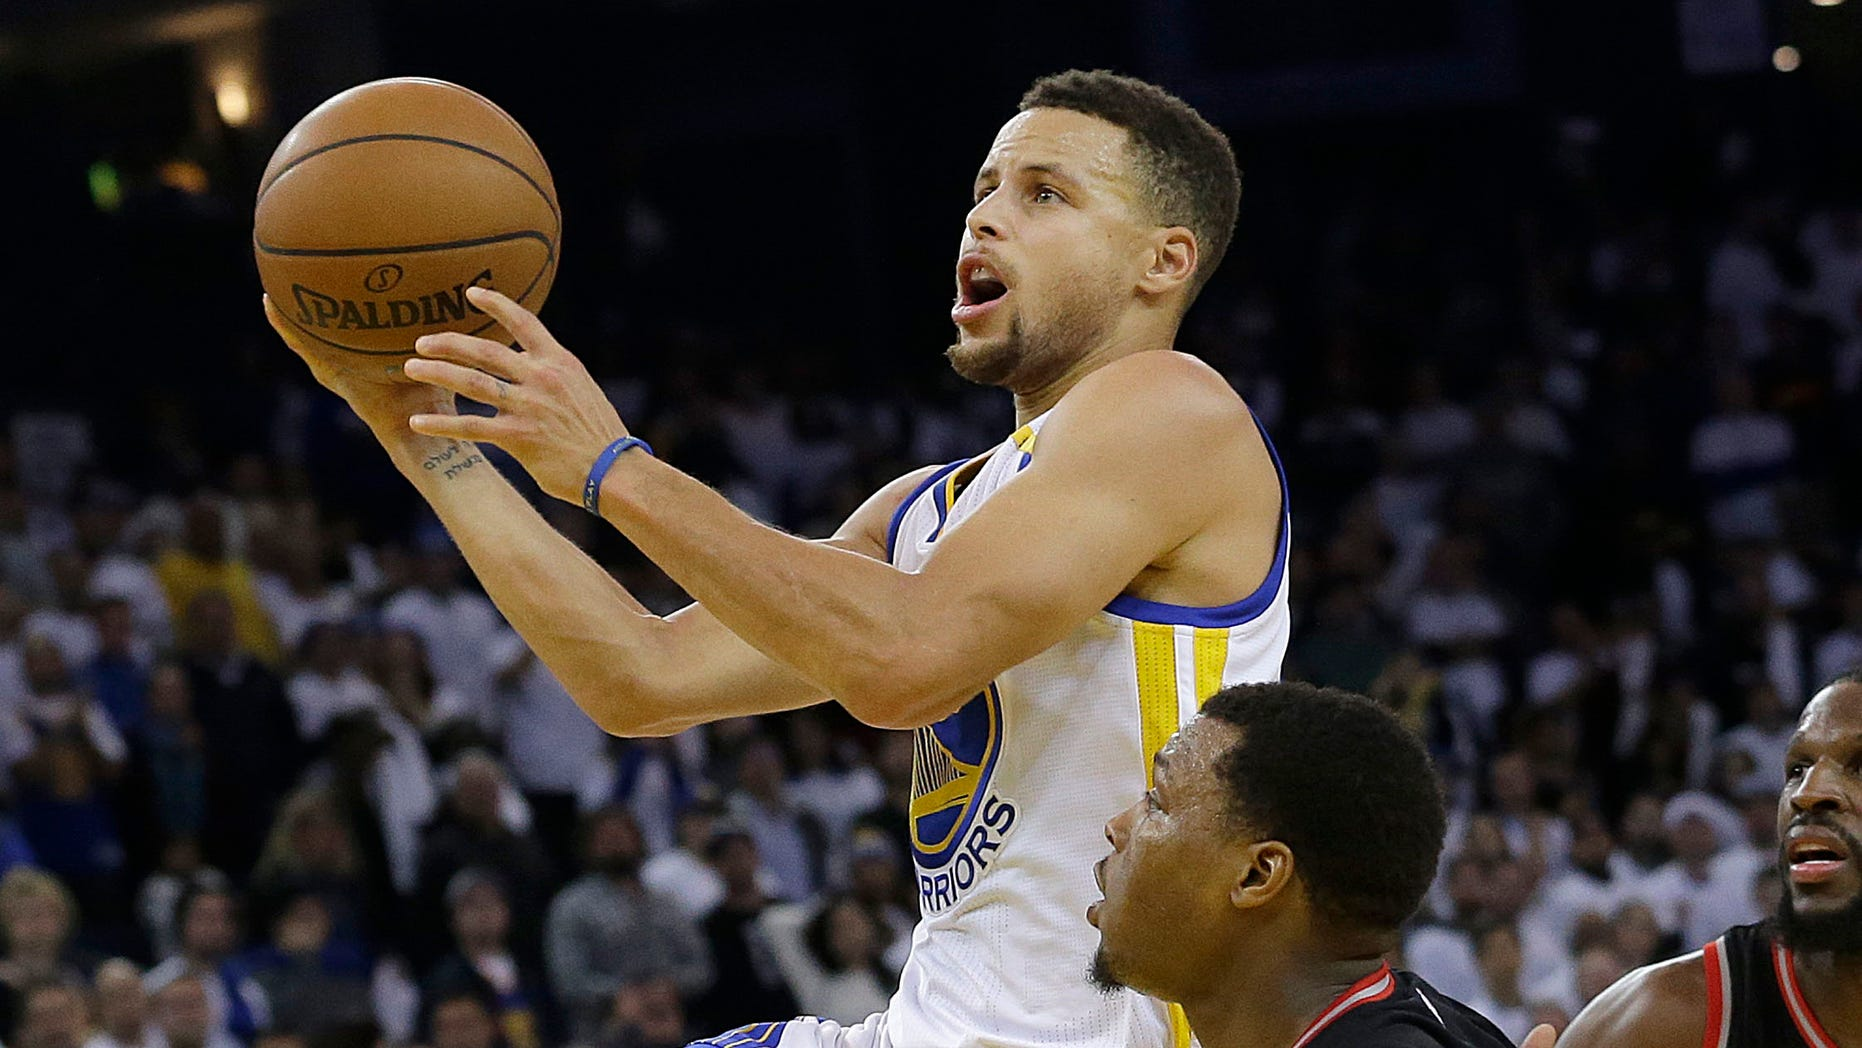 Golden State Warriors guard Stephen Curry, left, shoots against Toronto Raptors guard Kyle Lowry during the second half of an NBA basketball game in Oakland, Calif., Wednesday, Dec. 28, 2016. (AP Photo/Jeff Chiu)